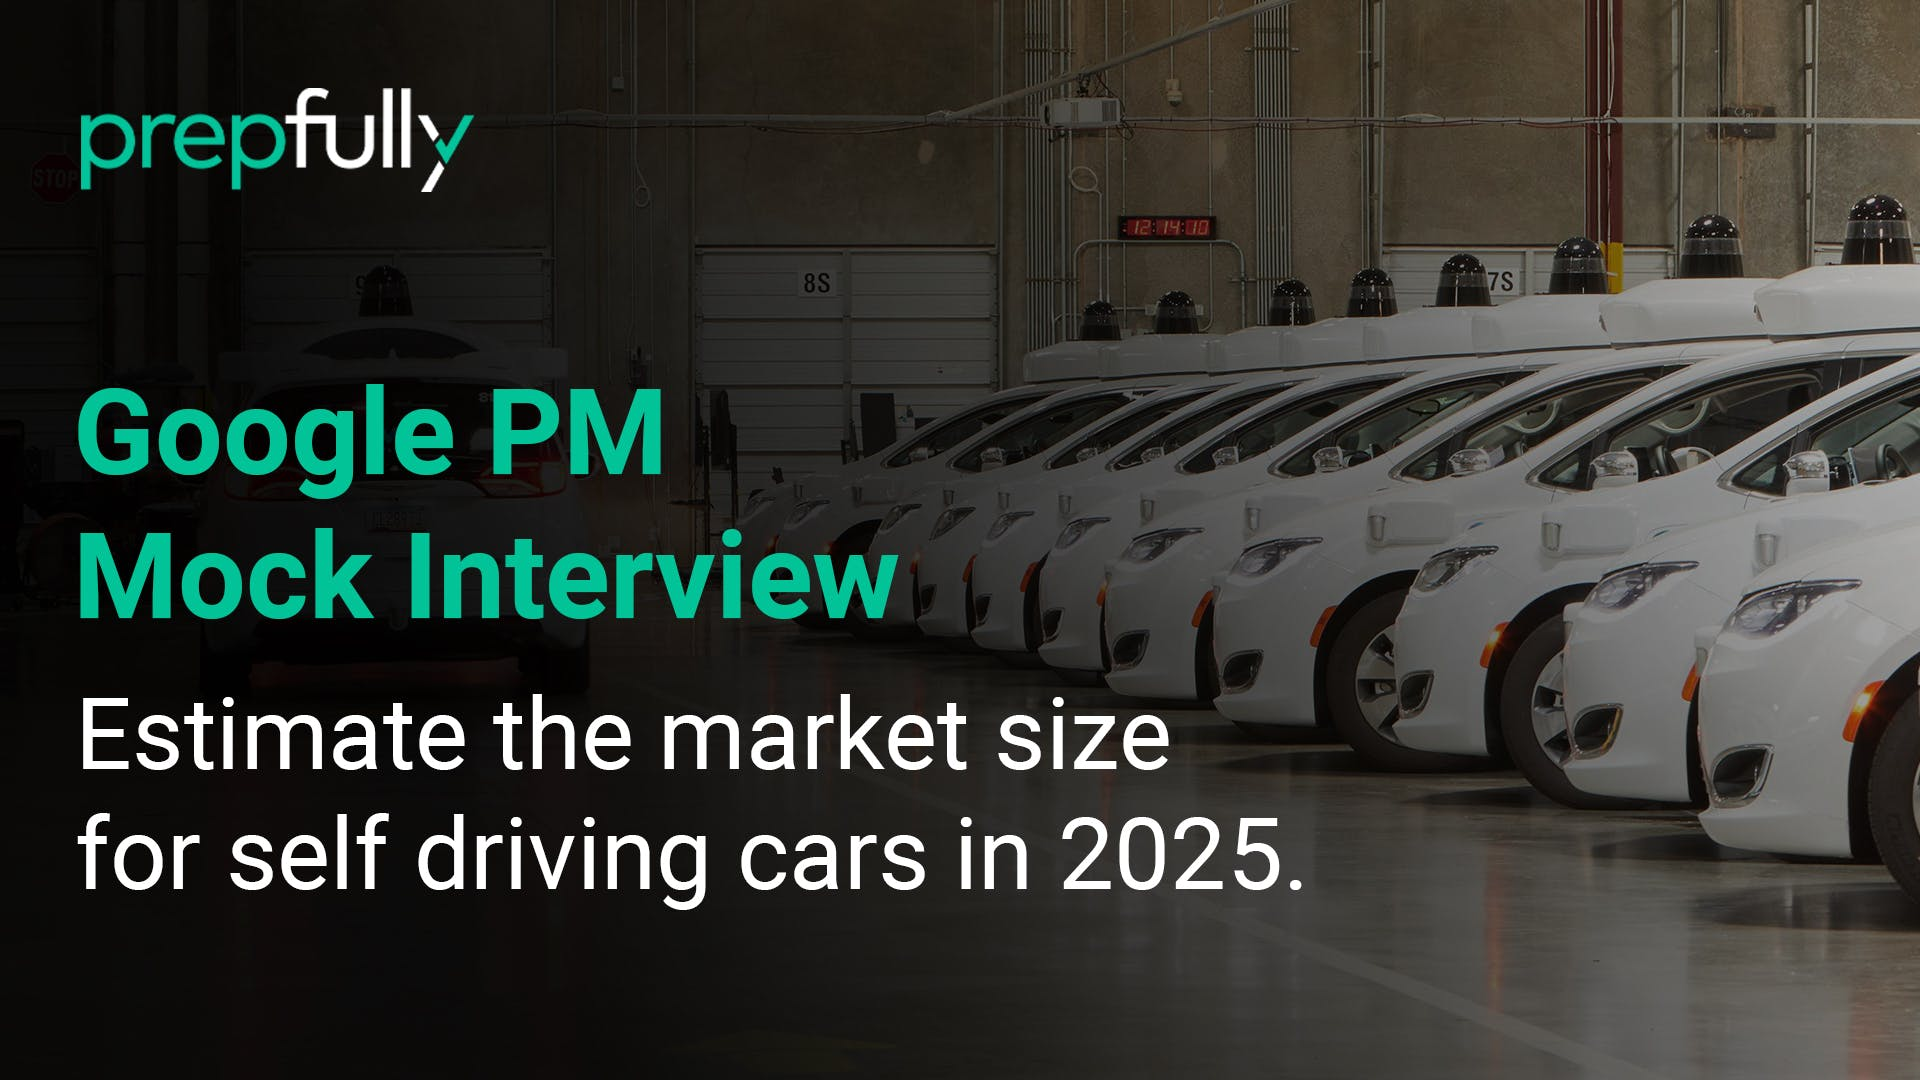 Estimate-the-market-size-for-self-driving-cars-in-2025